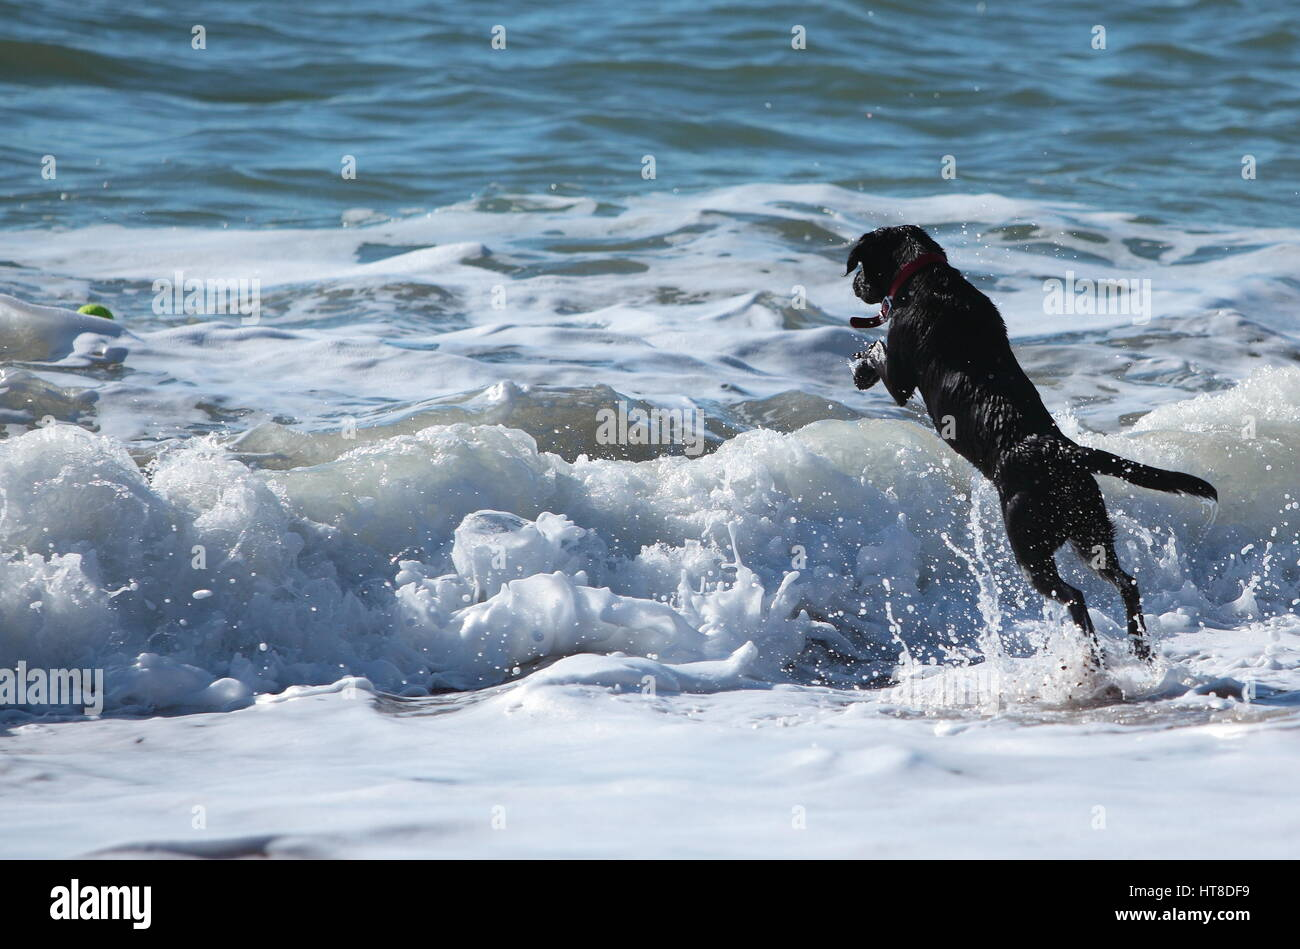 Dog a black labrador jumping into waves of the sea to retrieve his ball. - Stock Image